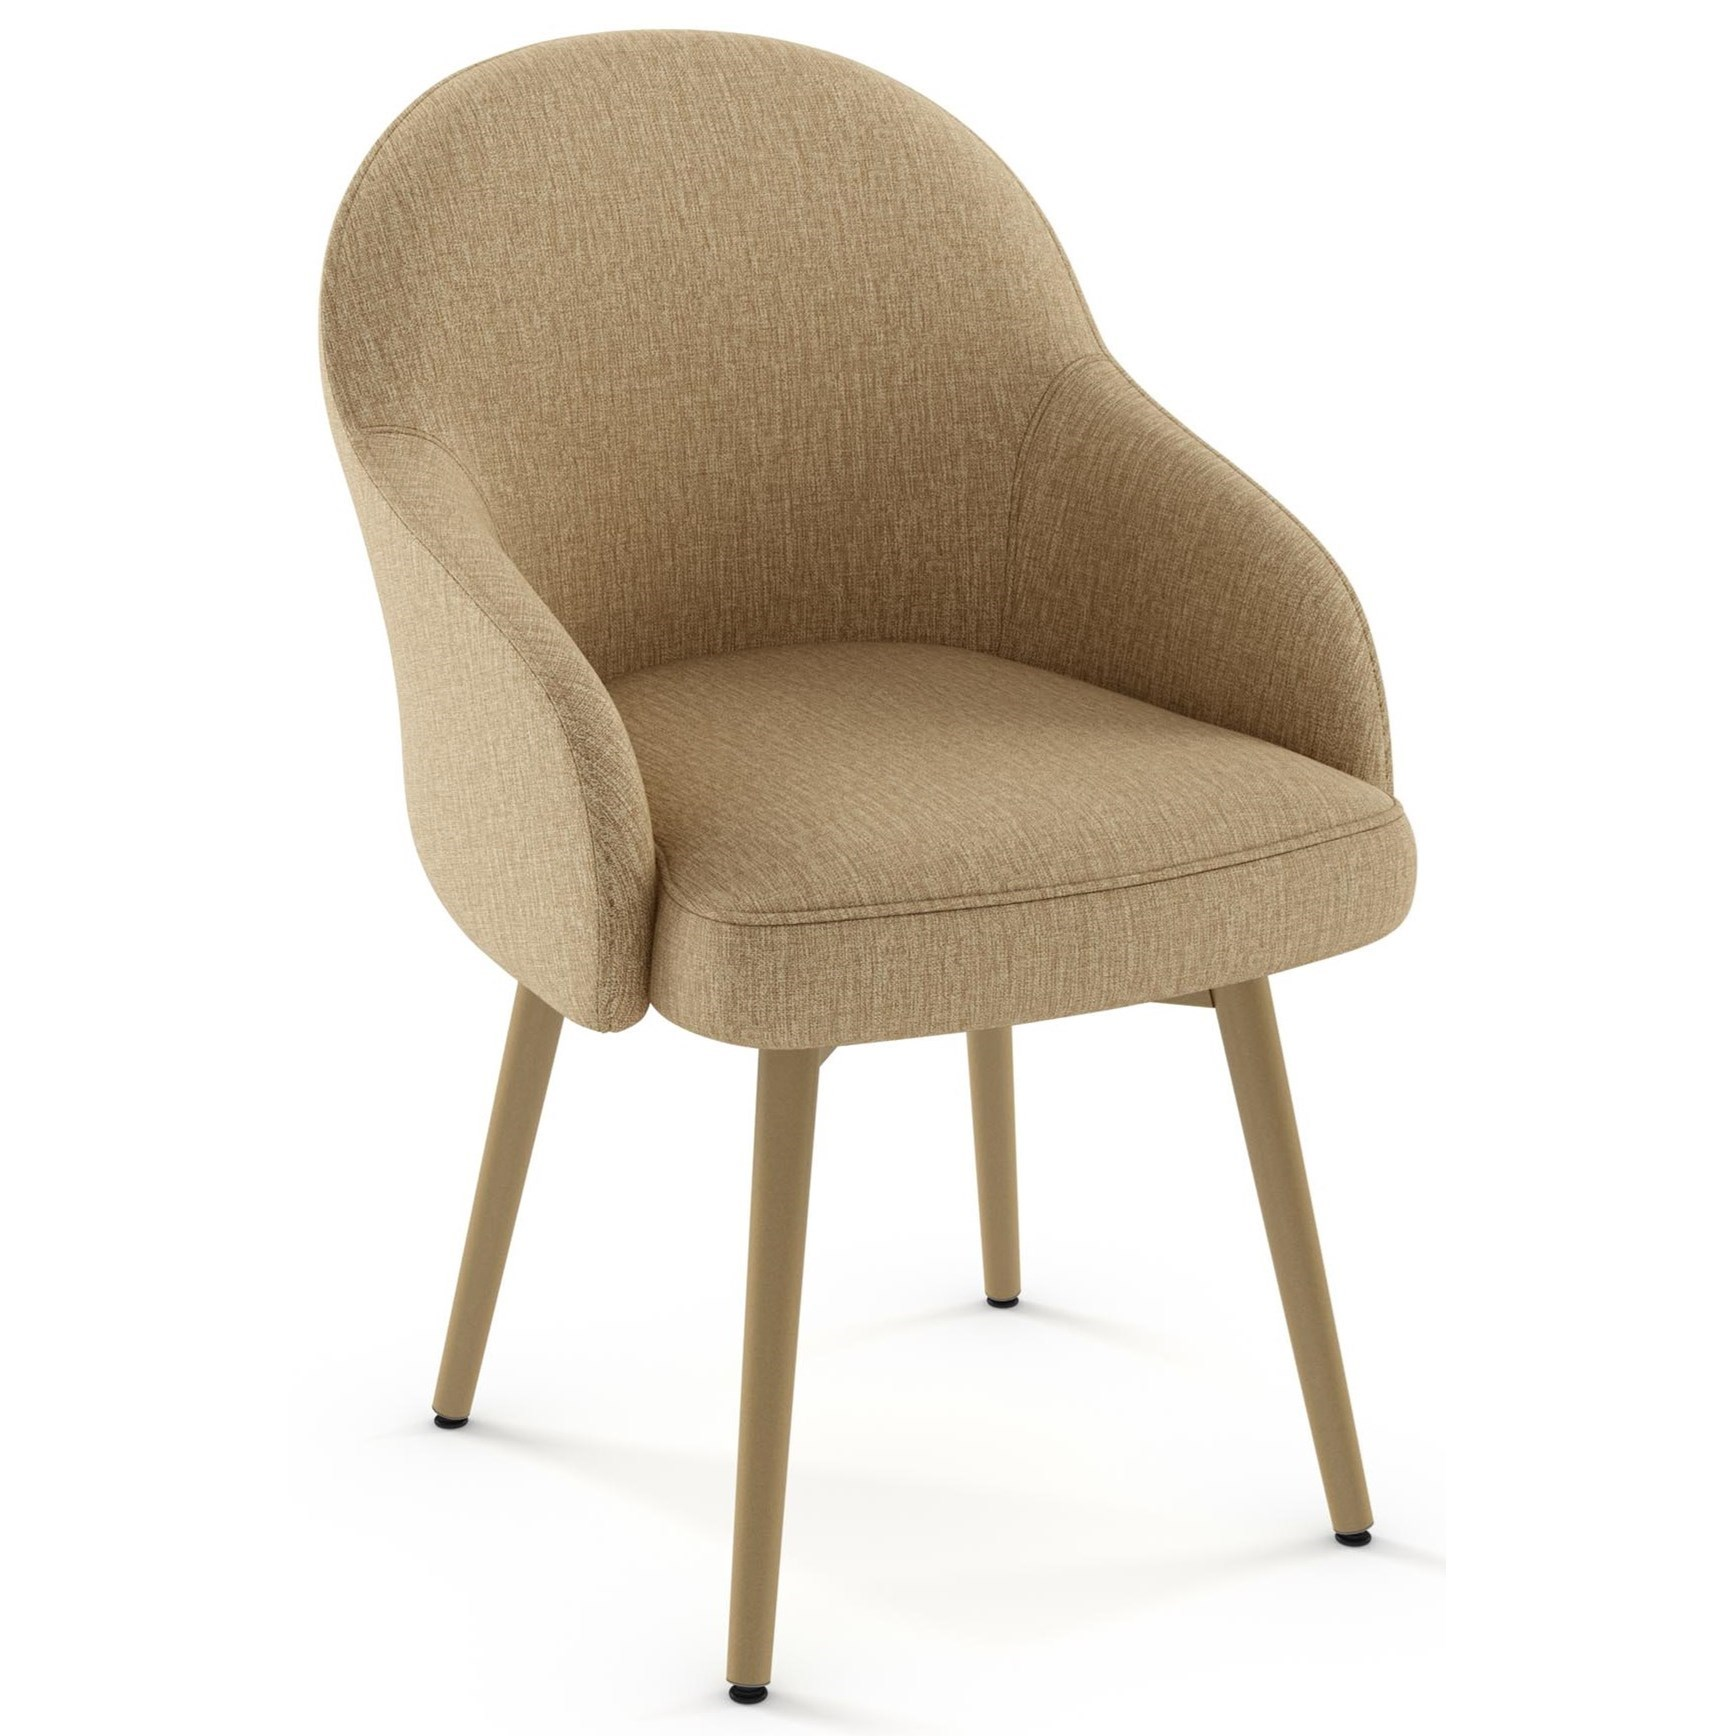 Boudoir Weston Swivel Chair by Amisco at Dinette Depot